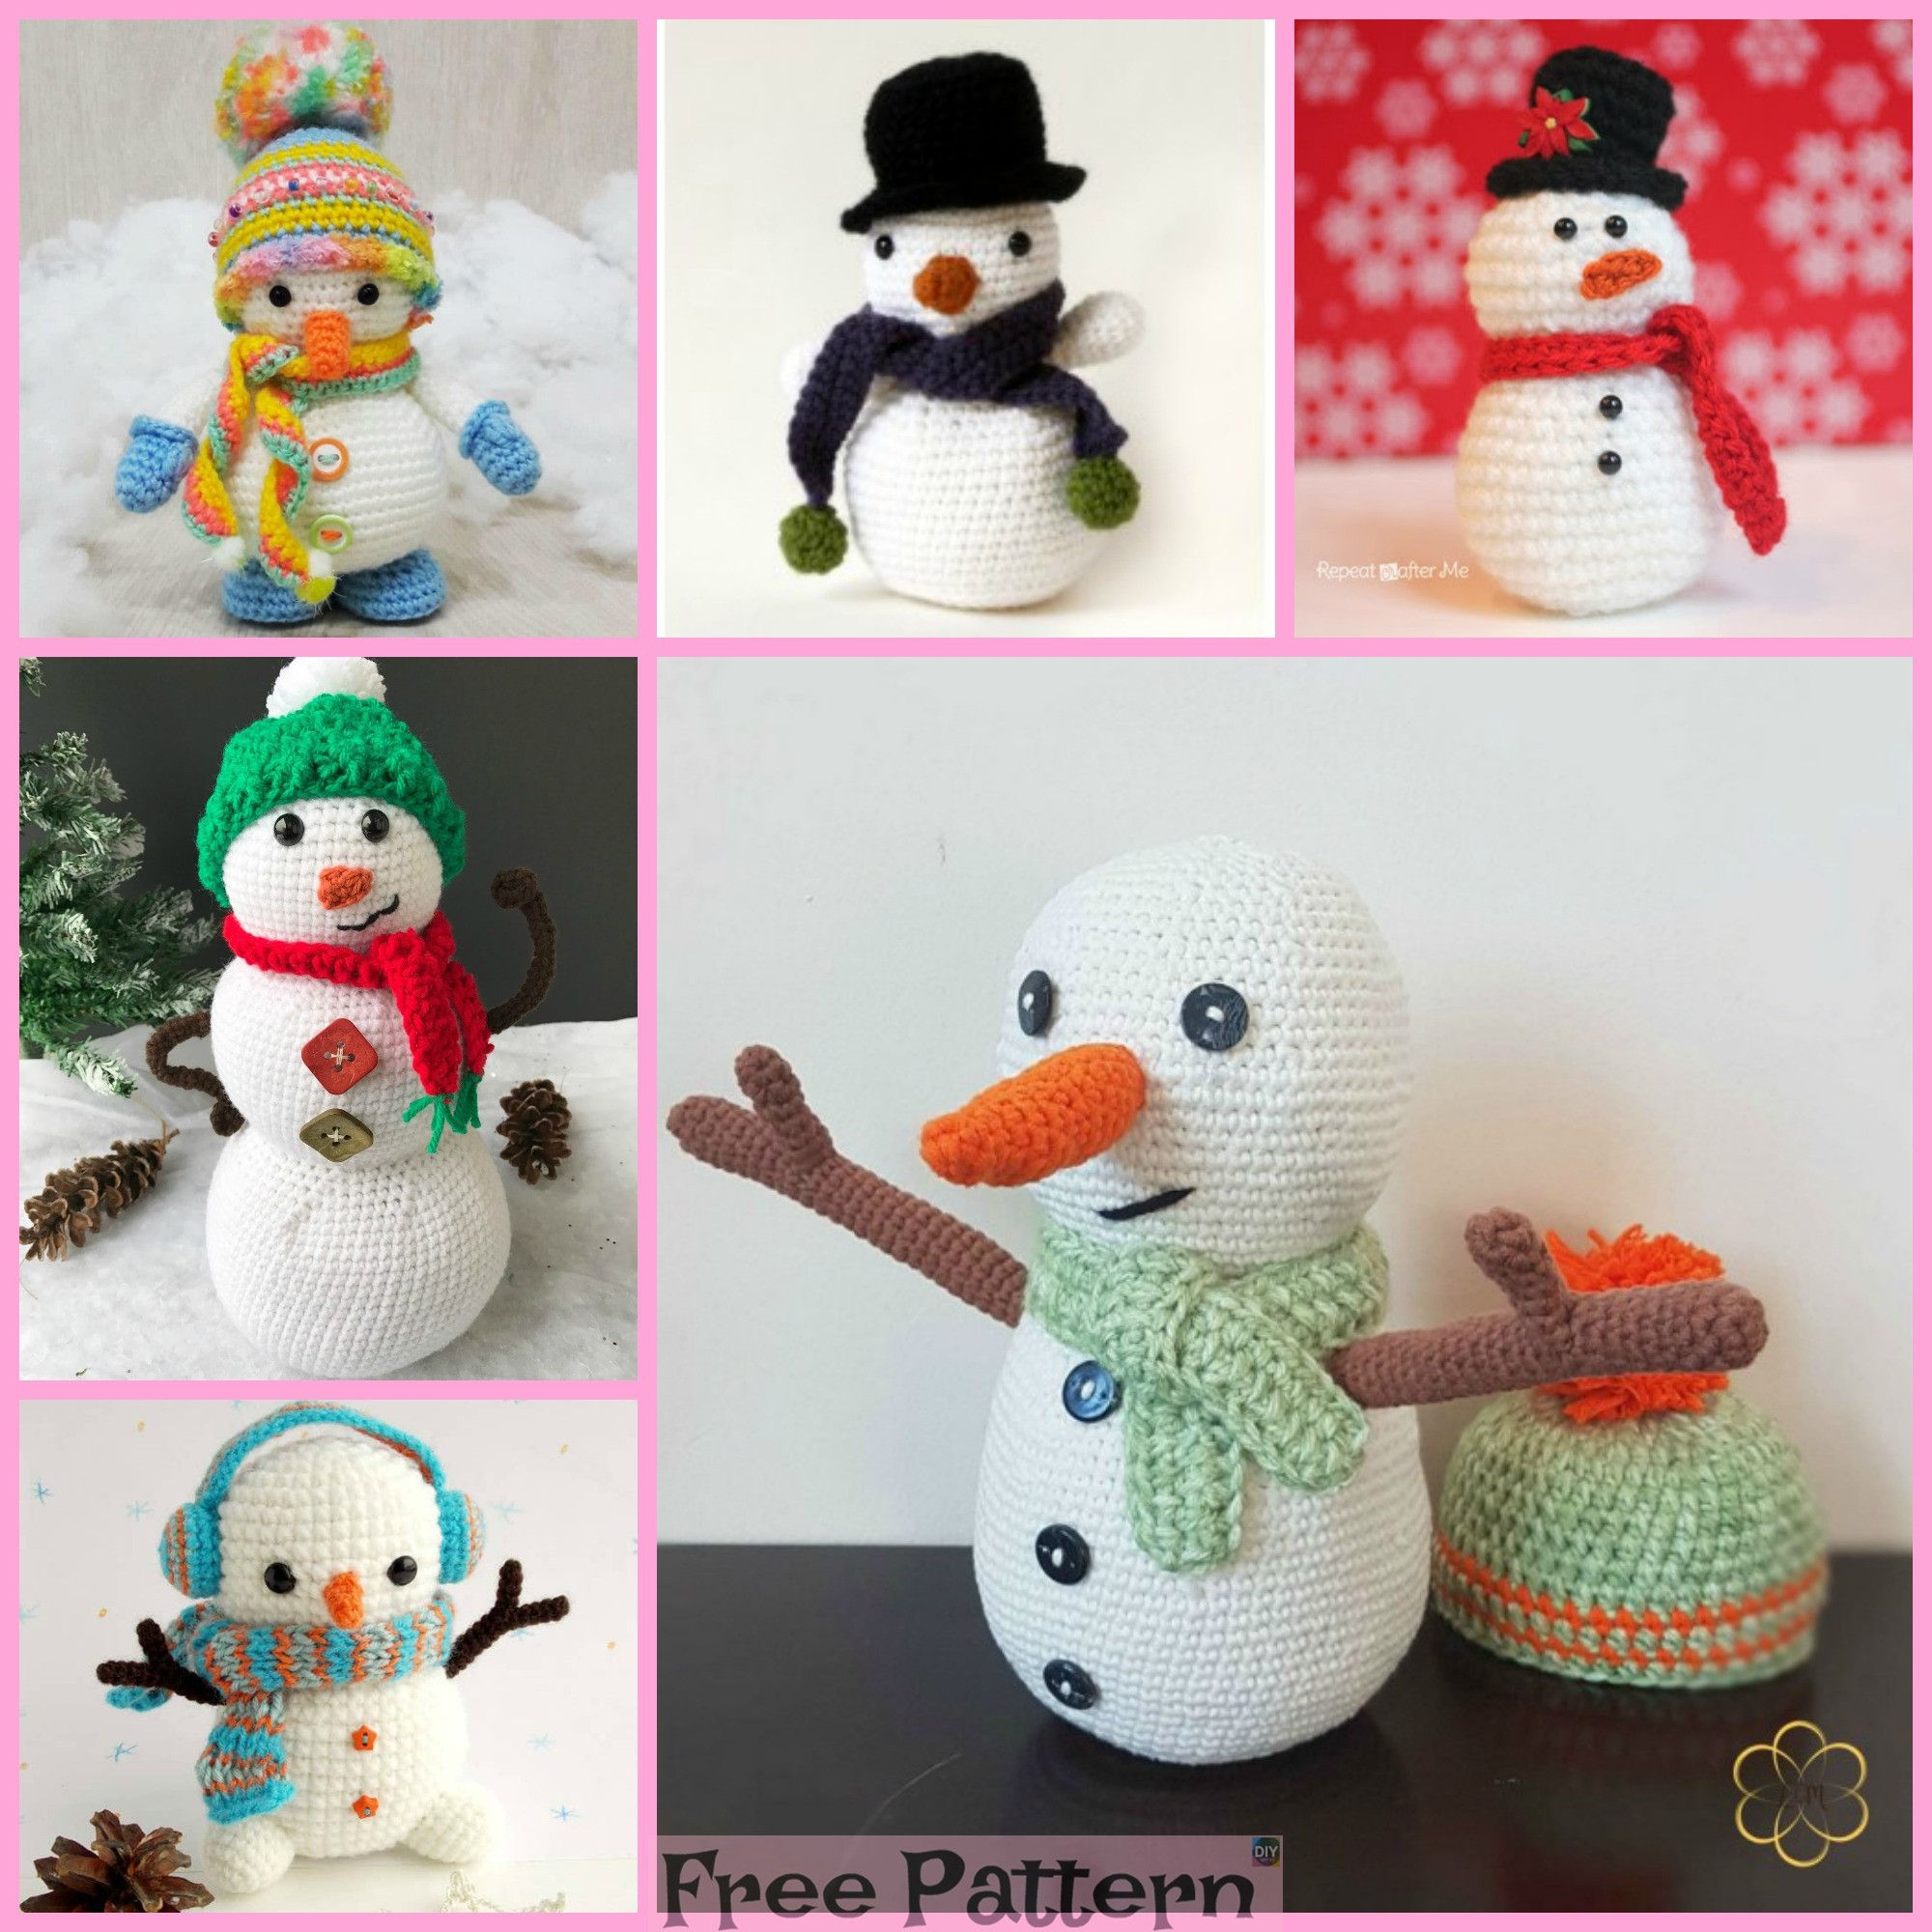 8 Crochet Snowman Amigurumi Free Patterns | amigurumis | Pinterest ...